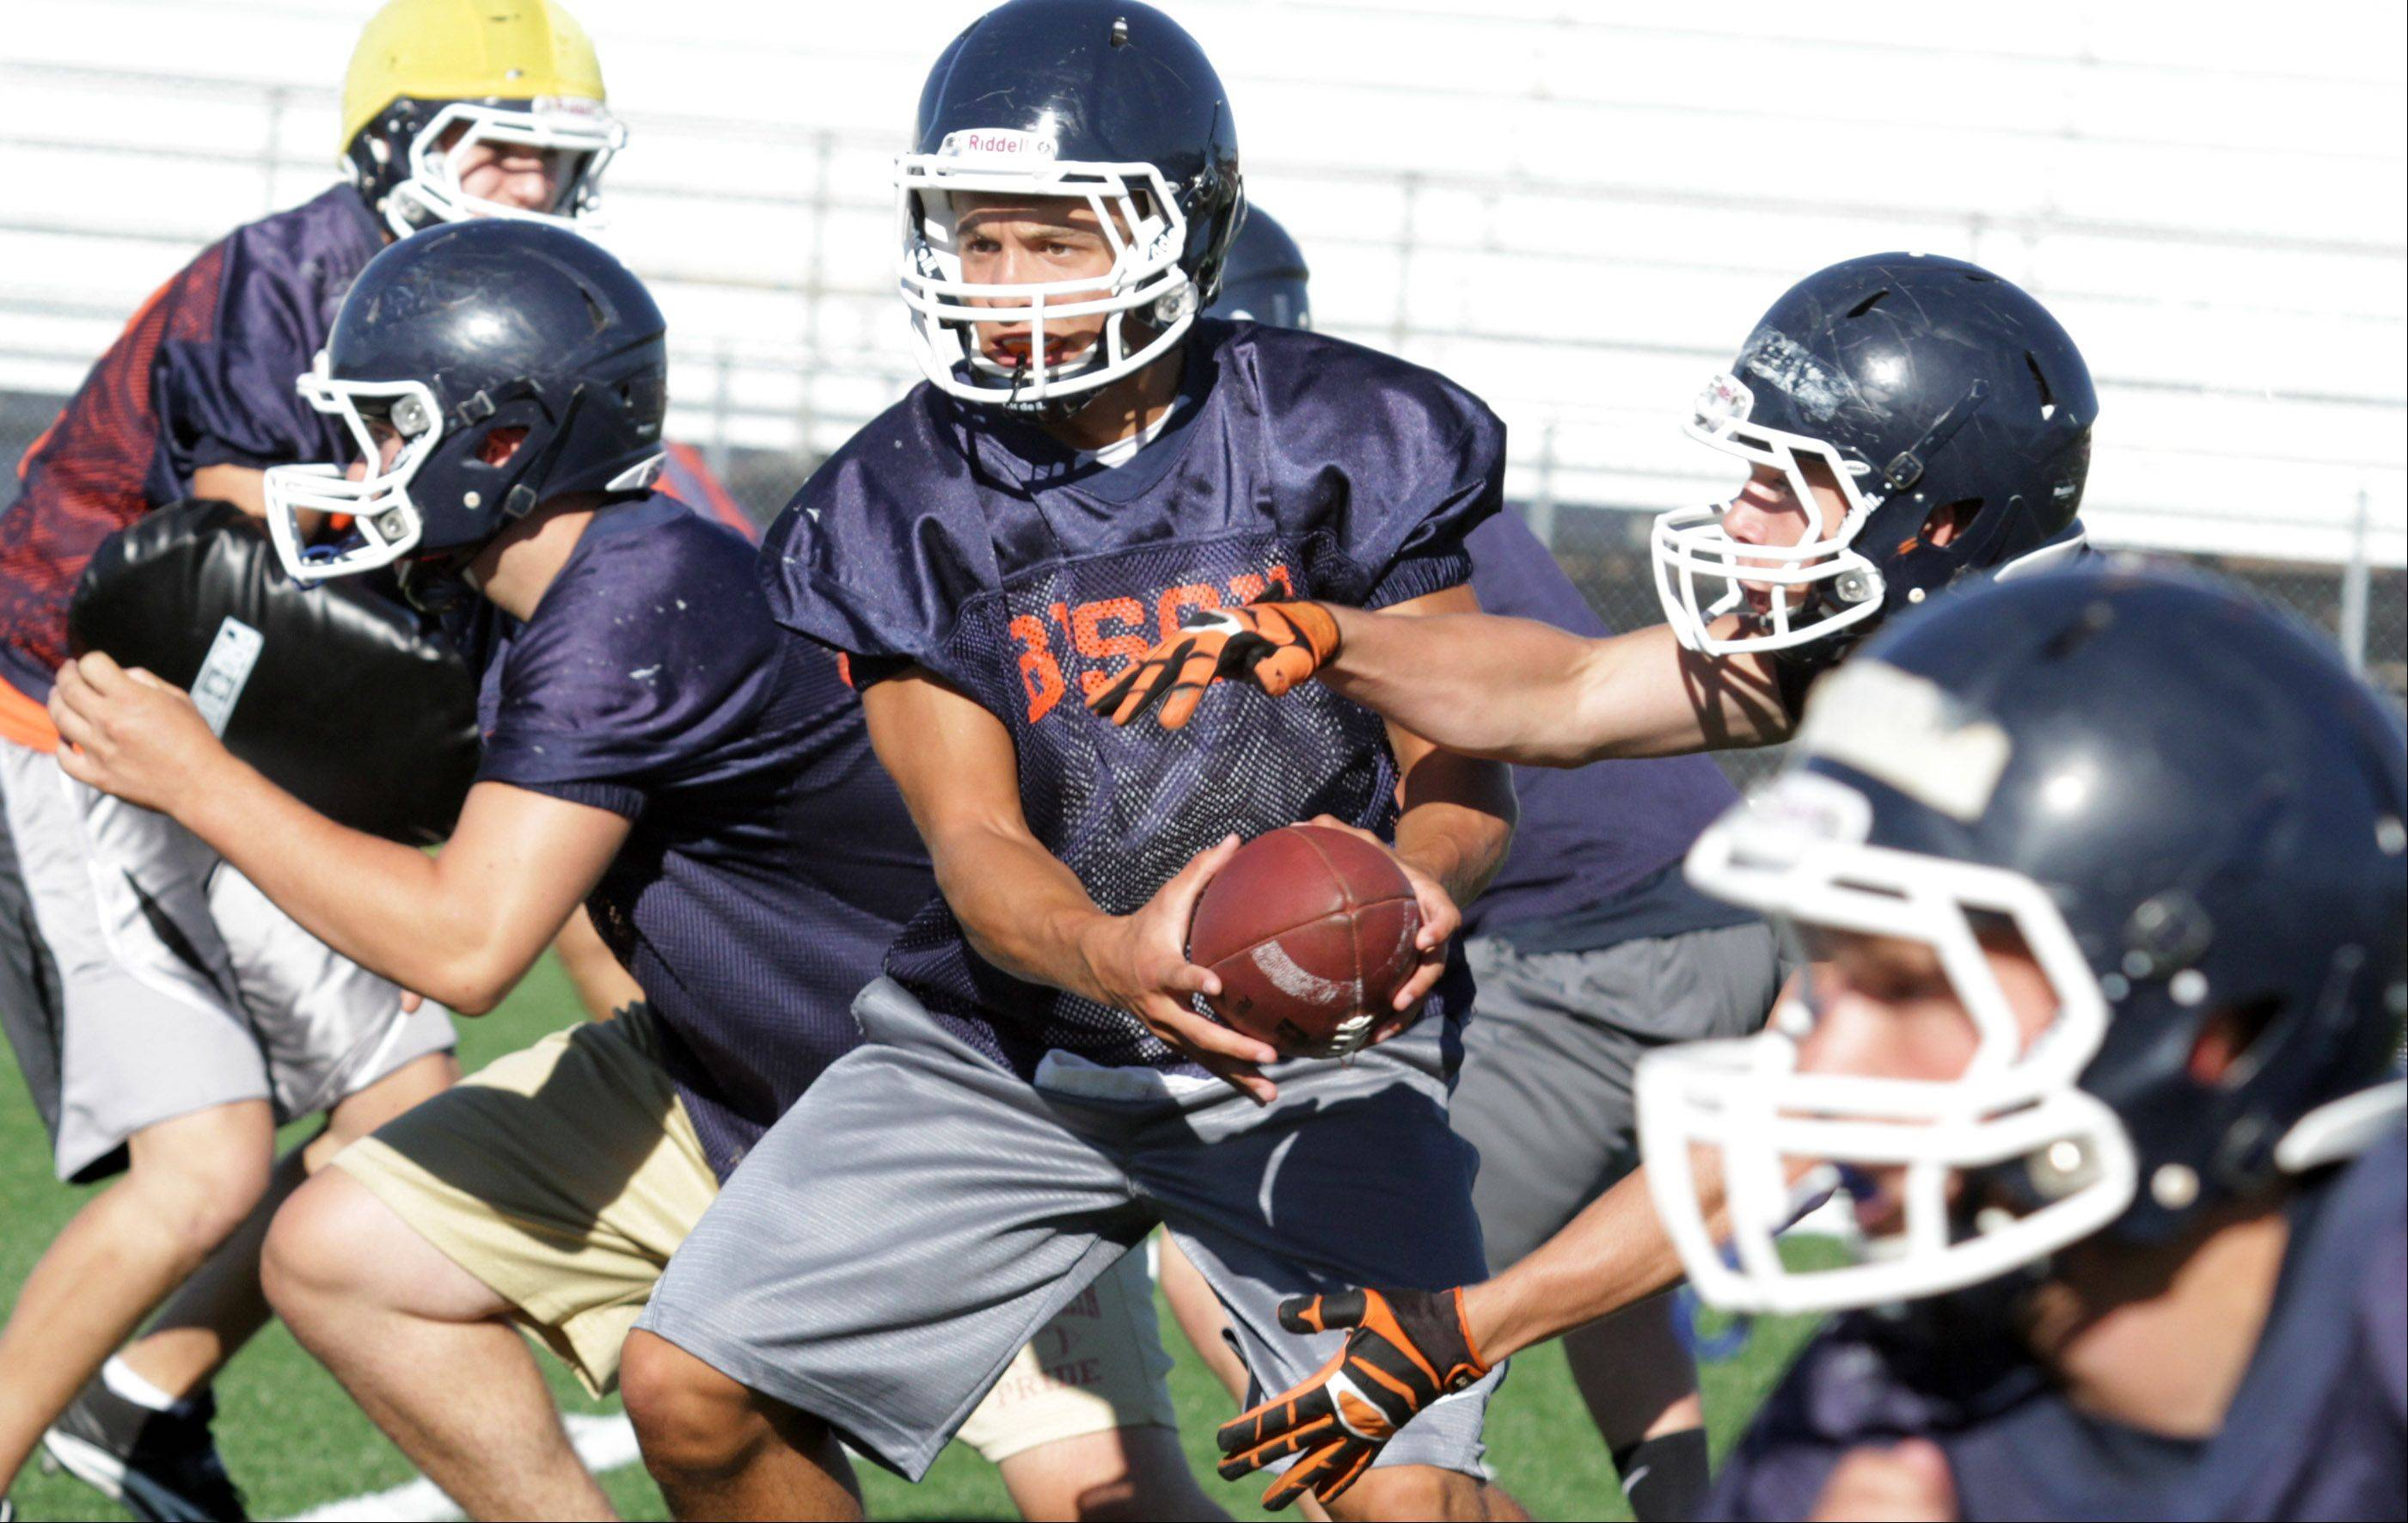 Buffalo Grove High School starting quarterback Andrew Apel hands the ball off to fullback Scott Smitheren.